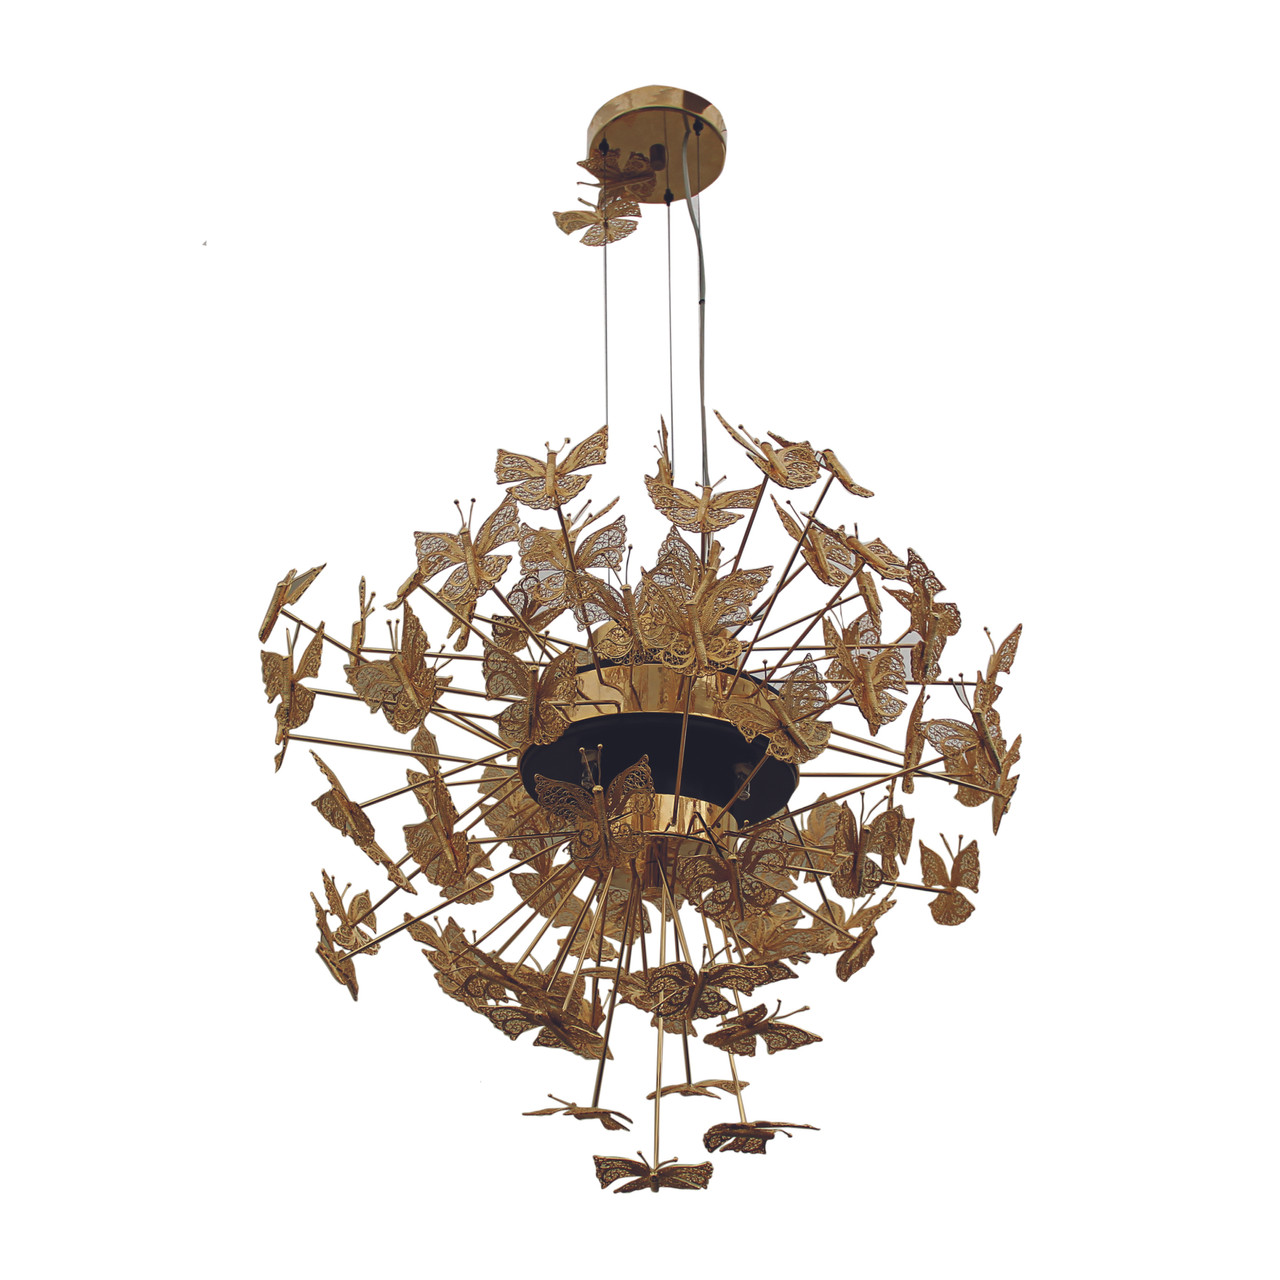 KOKET,   Nymph Chandelier